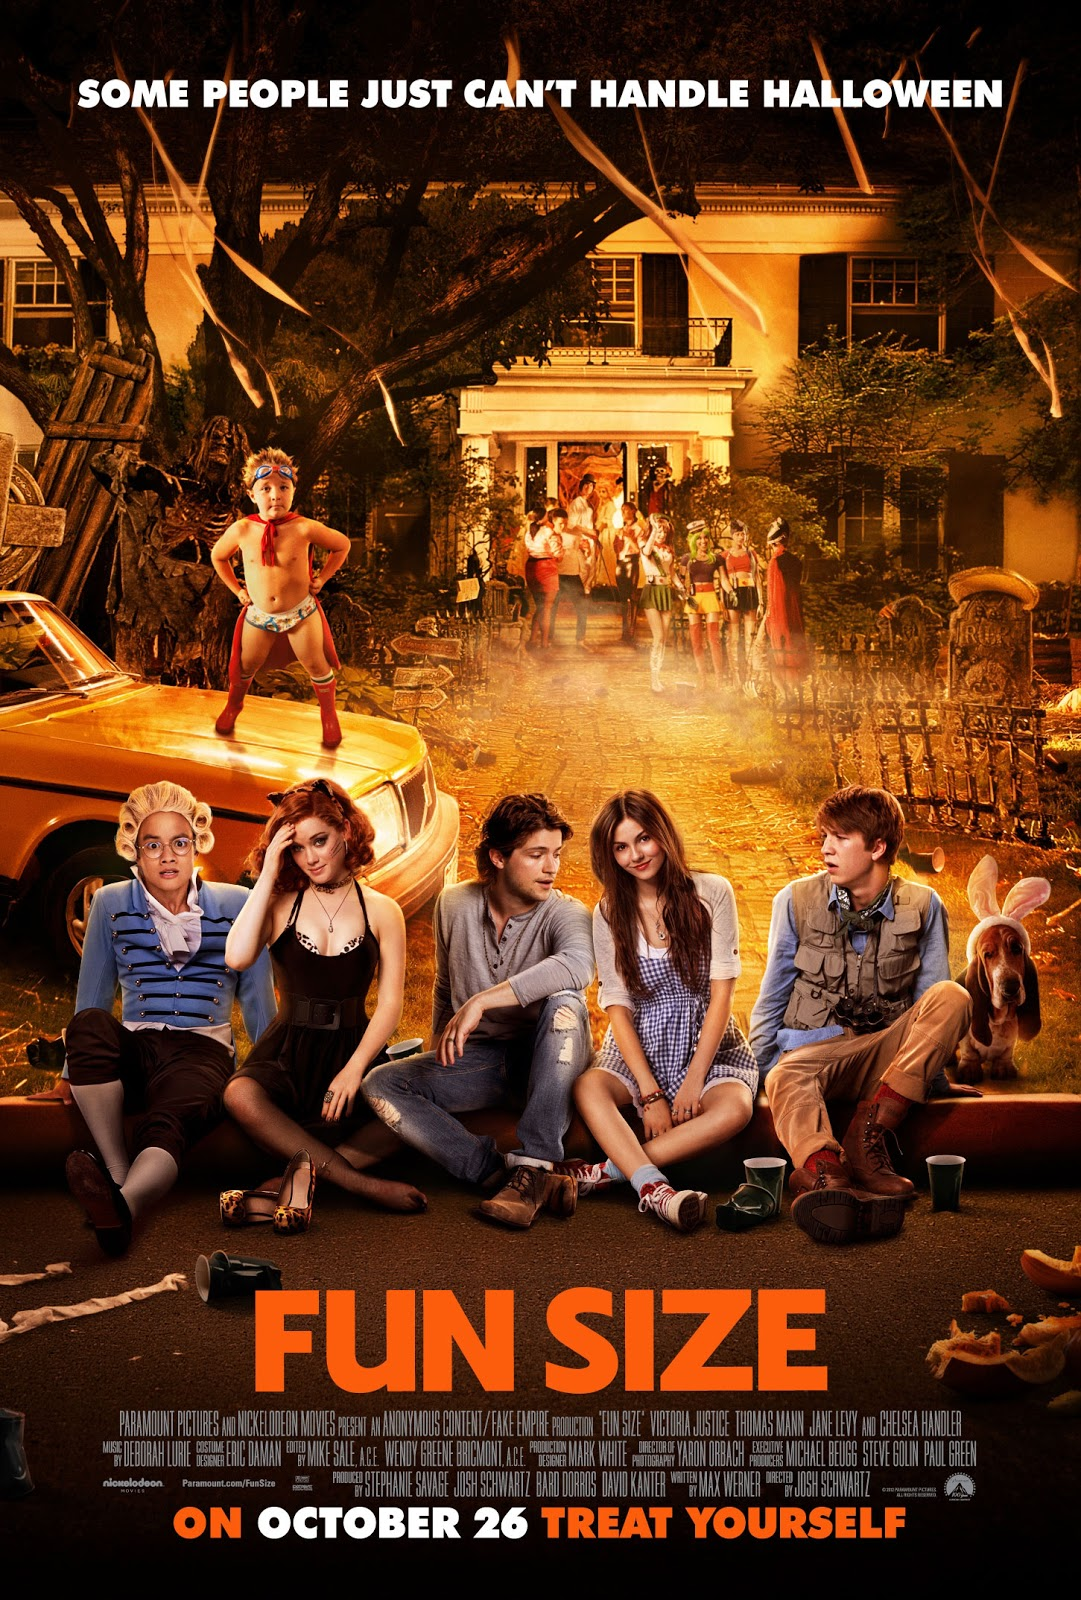 zachary s marshs movie reviews review fun size